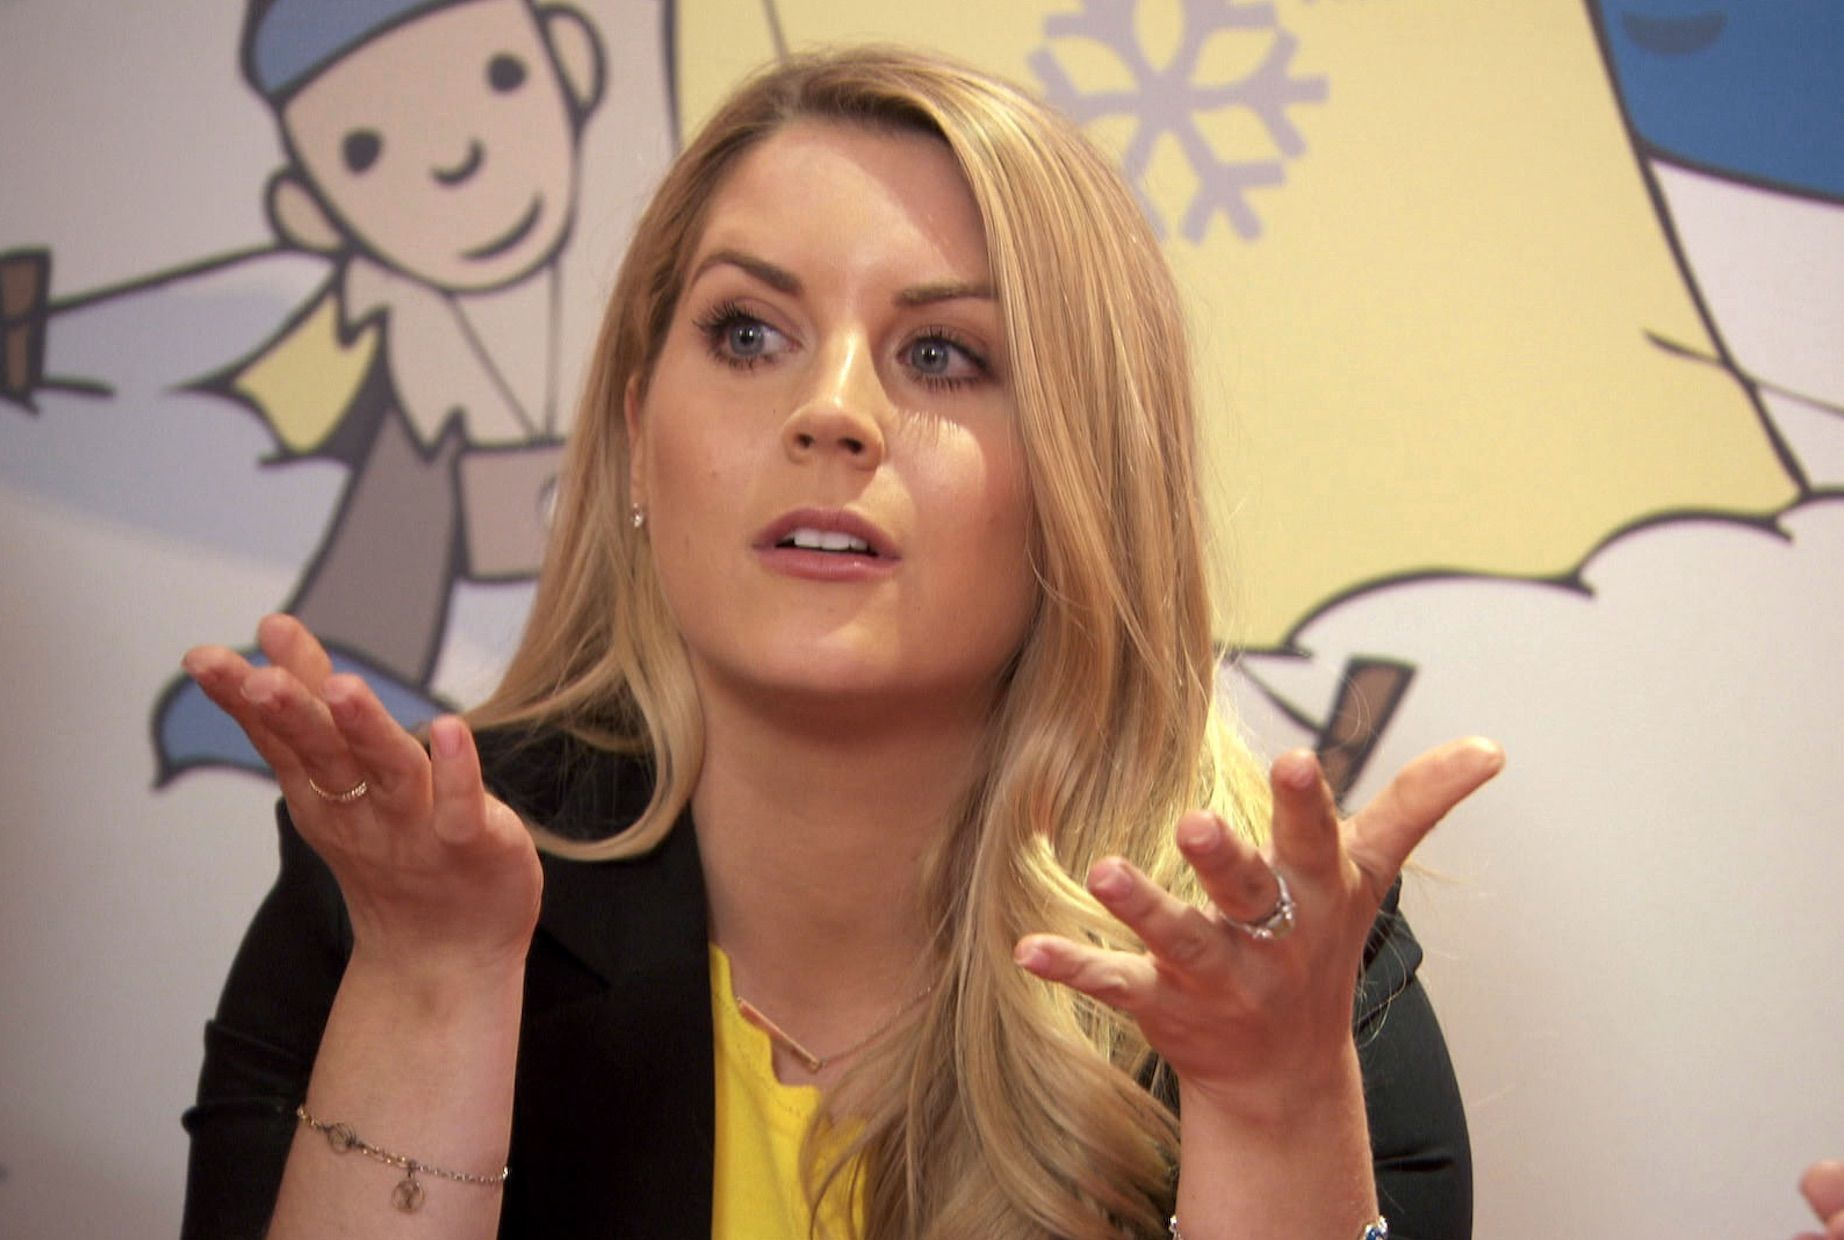 The Apprentice sparks controversy as candidate is accused of sexism